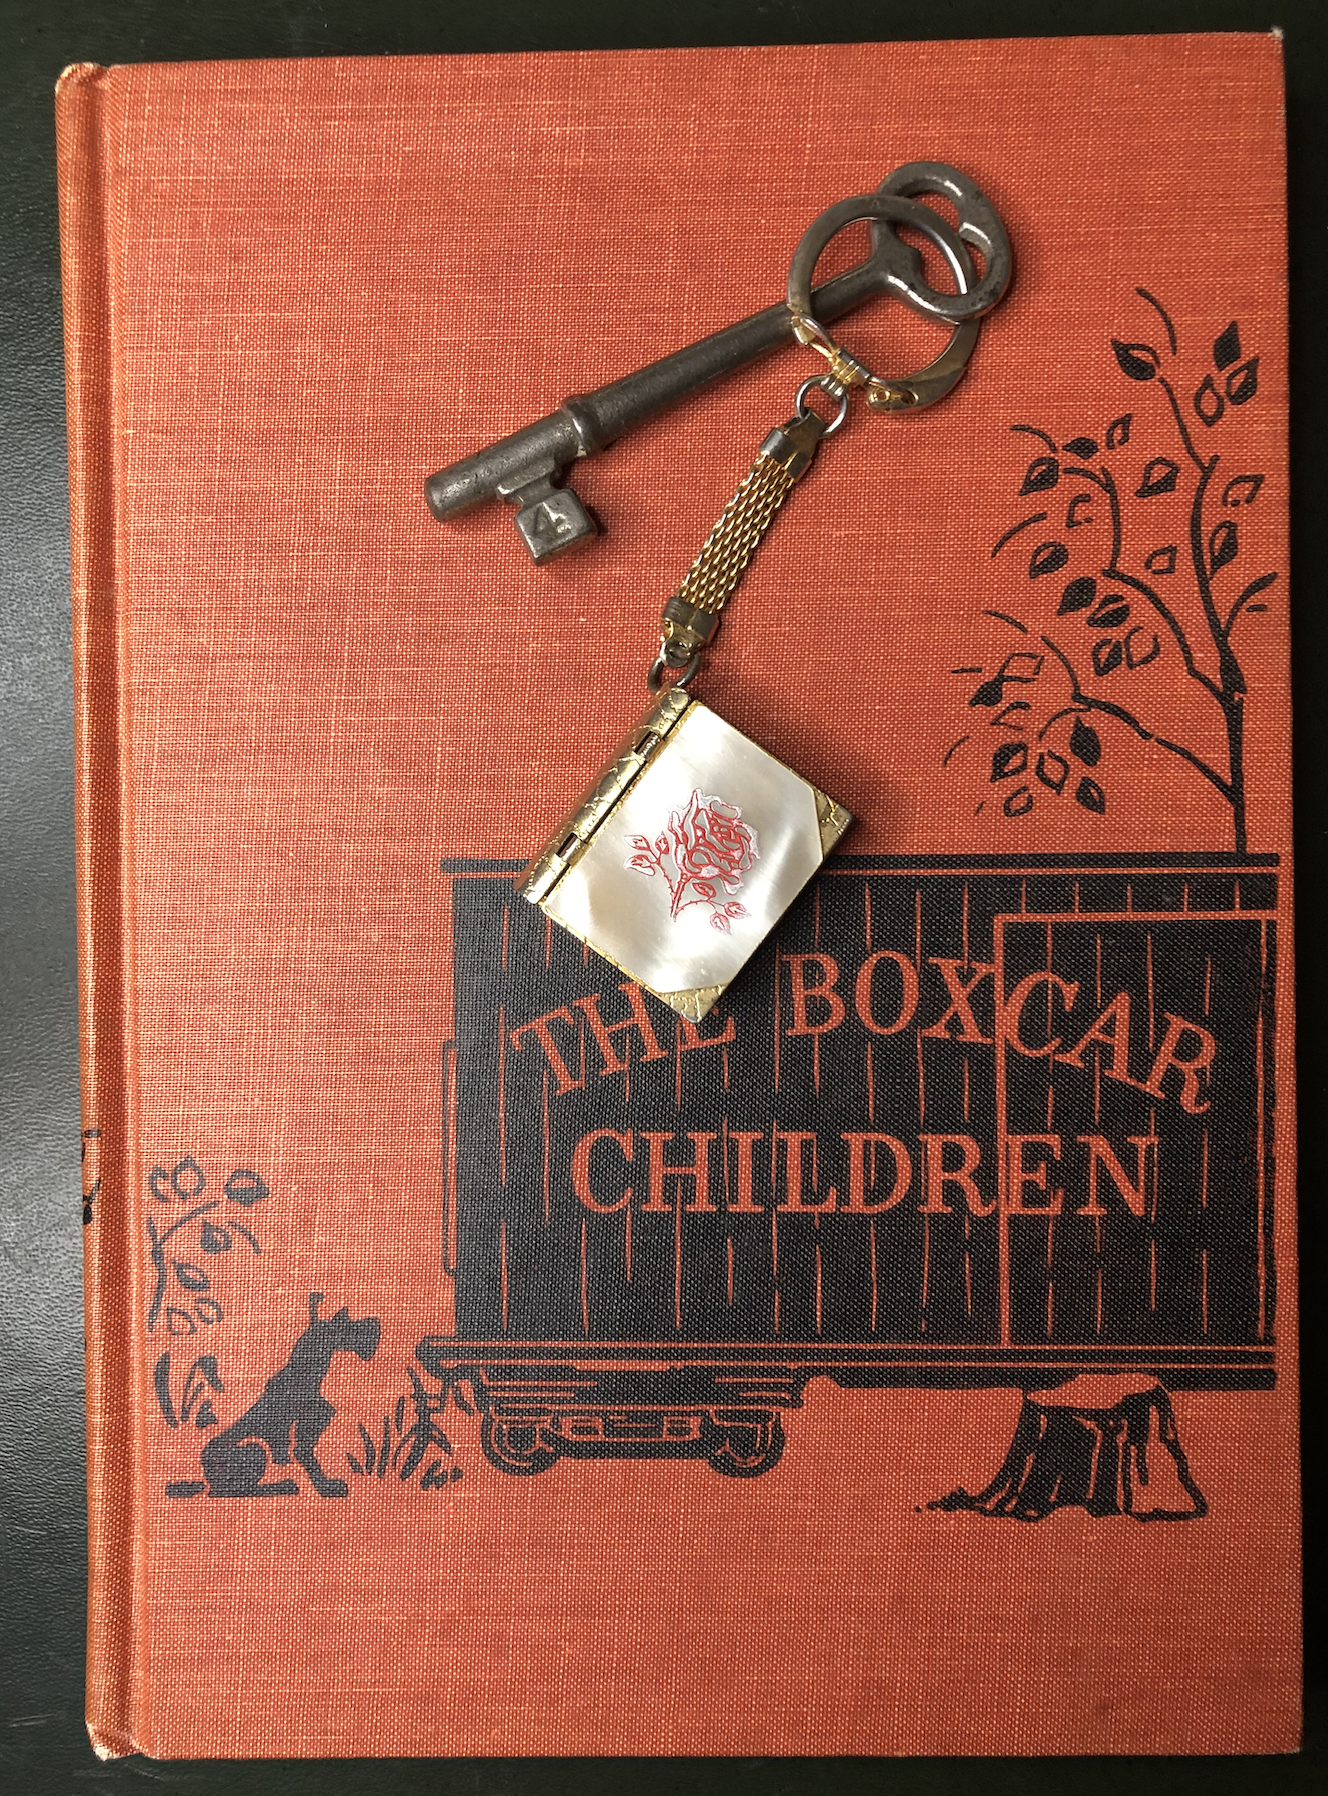 Image of the Boxcar Children book cover.